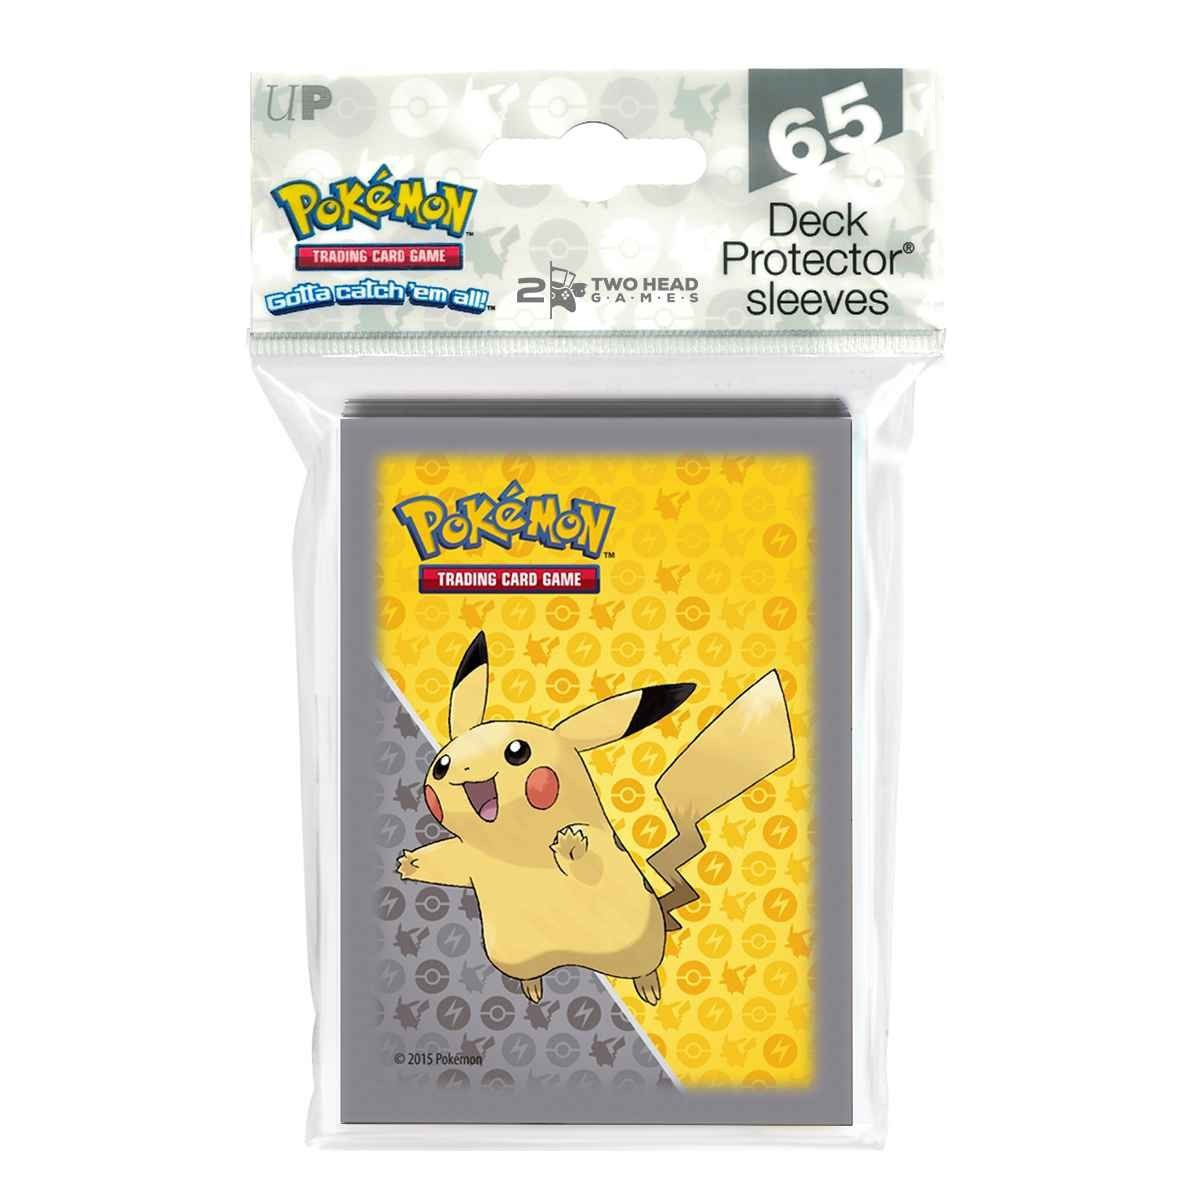 Deck Protector Ultra Pro Pokemon 65 Sleeves Pikachu